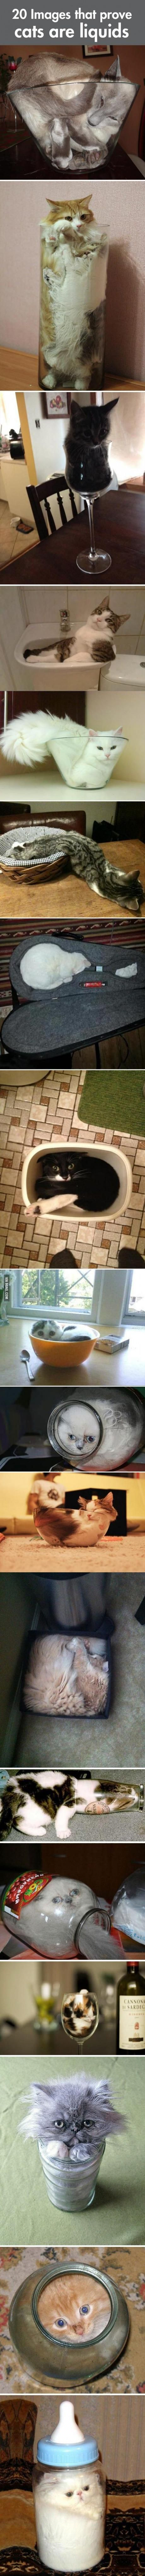 Definitive Proof That Cats Are Basically Liquids... | DailyFailCenter